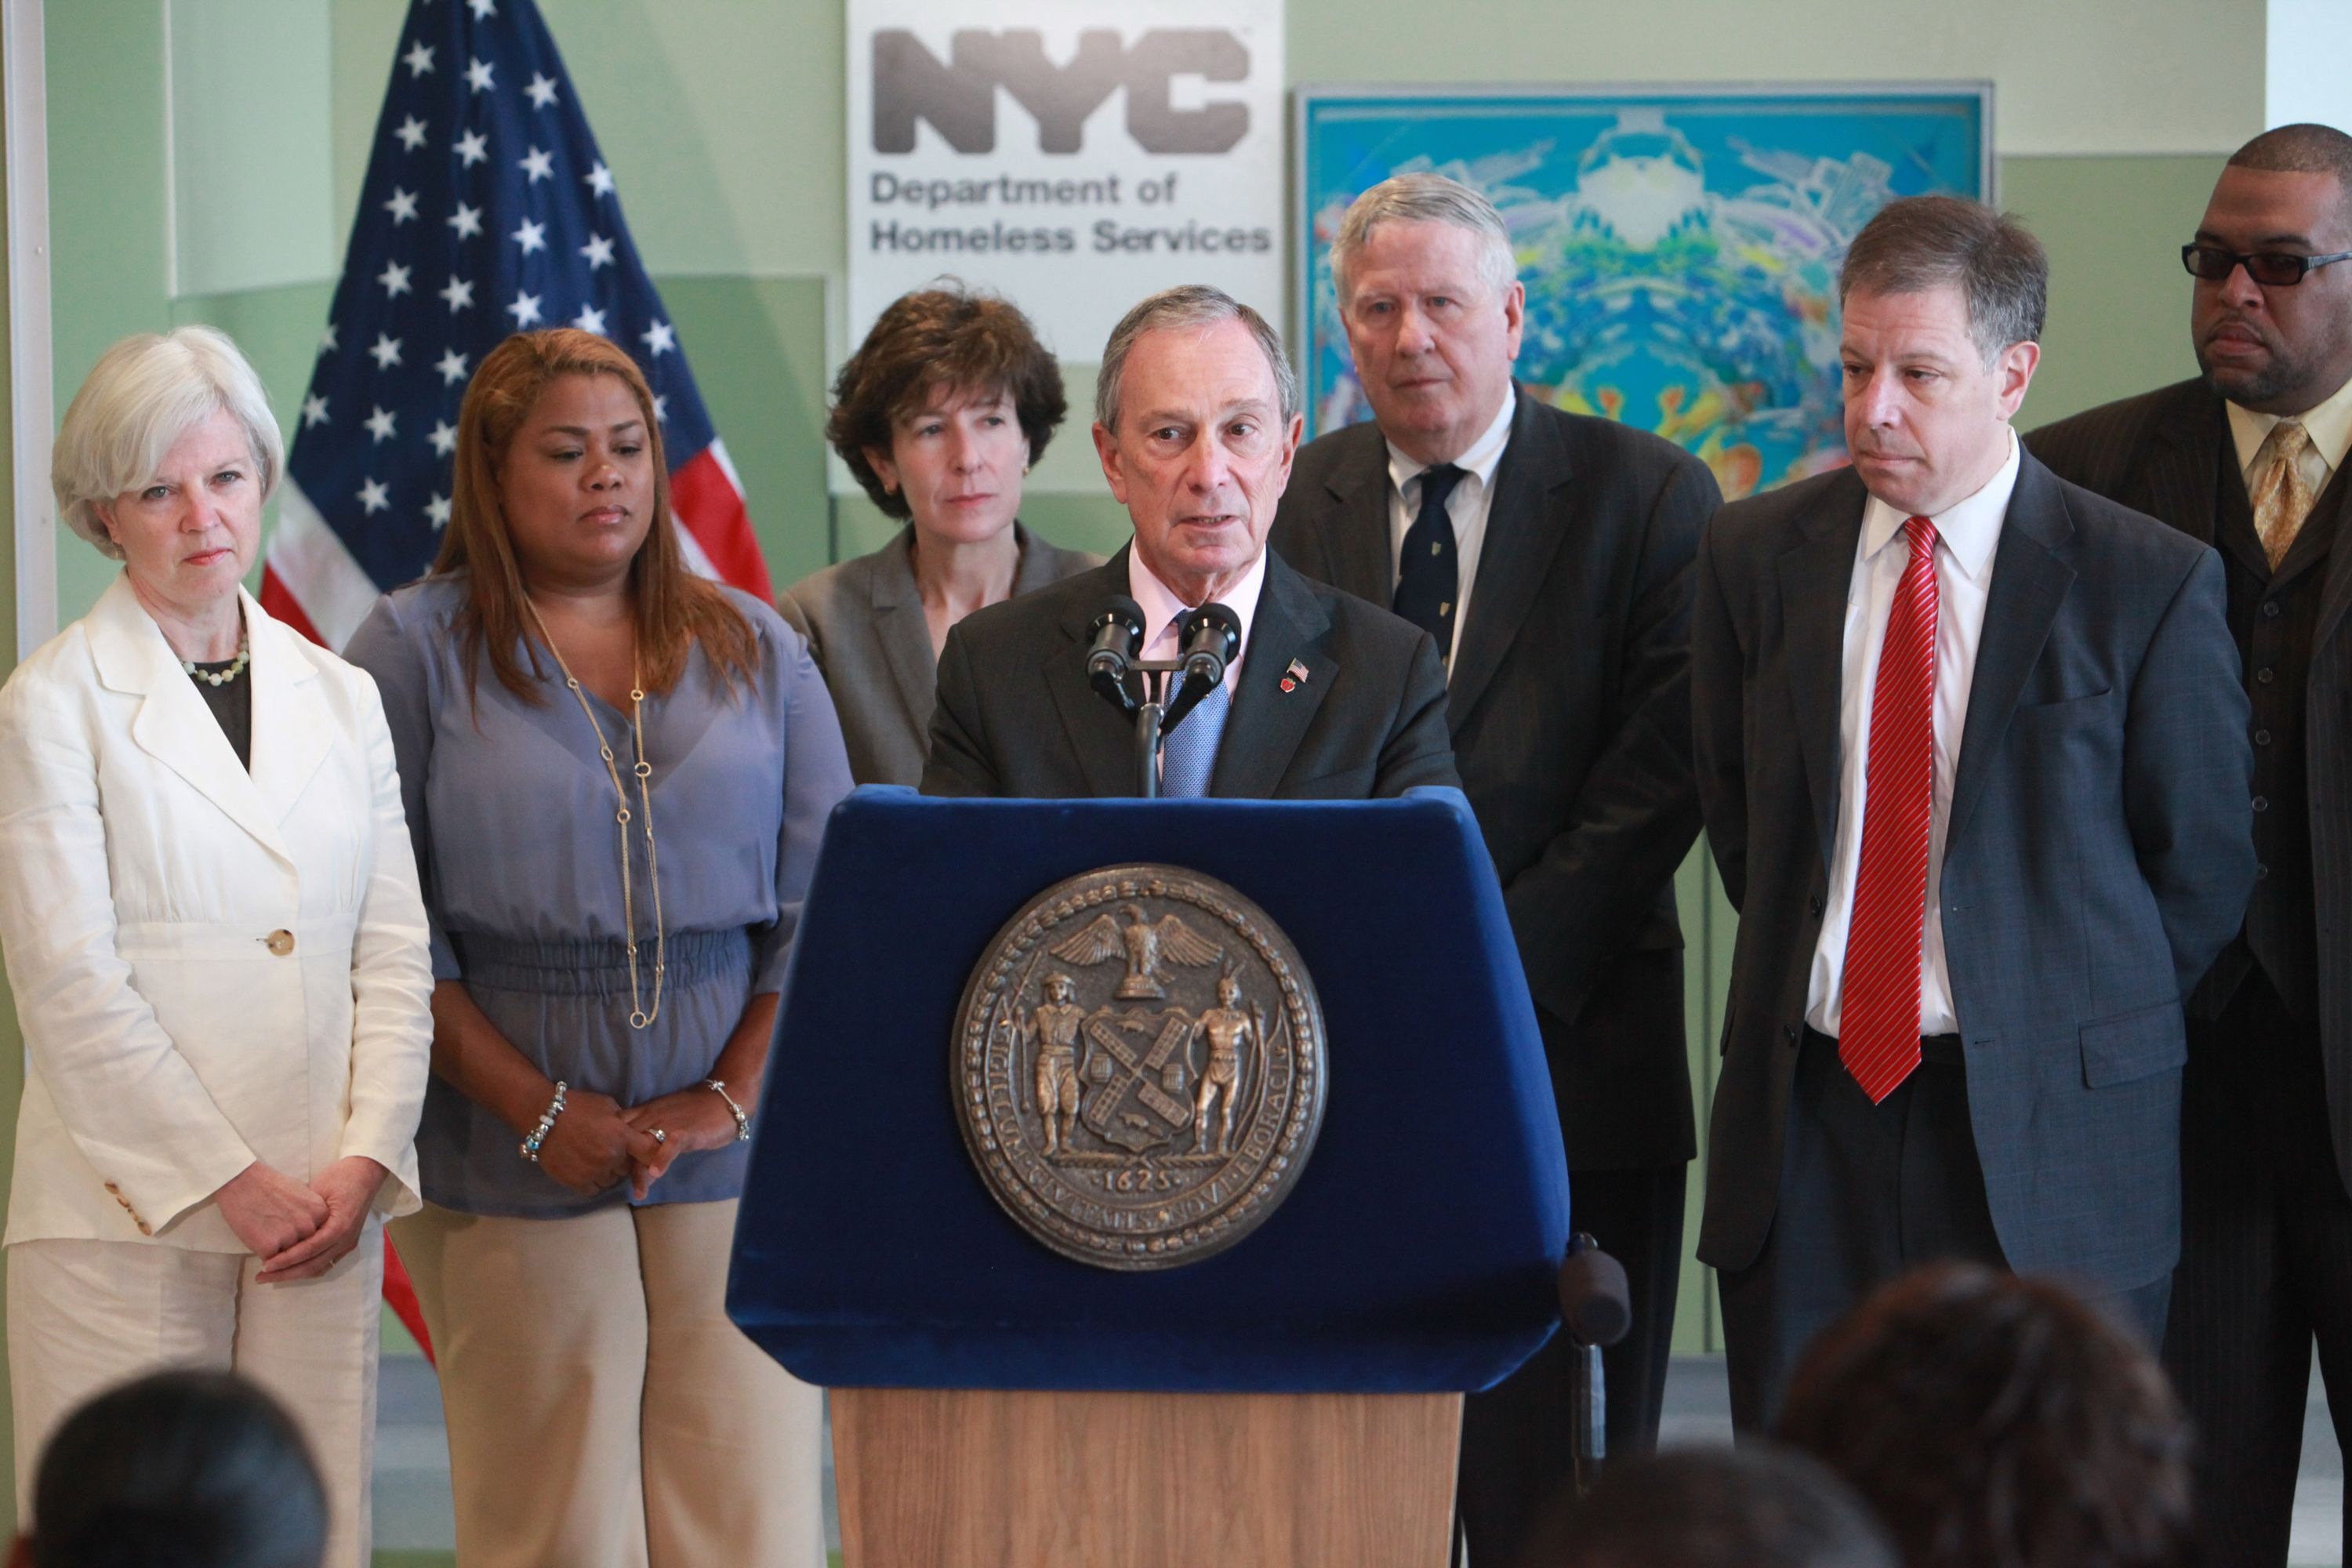 Then-Mayor Michael Bloomberg speaks in 2011 about the city opening new housing to aid homeless families.